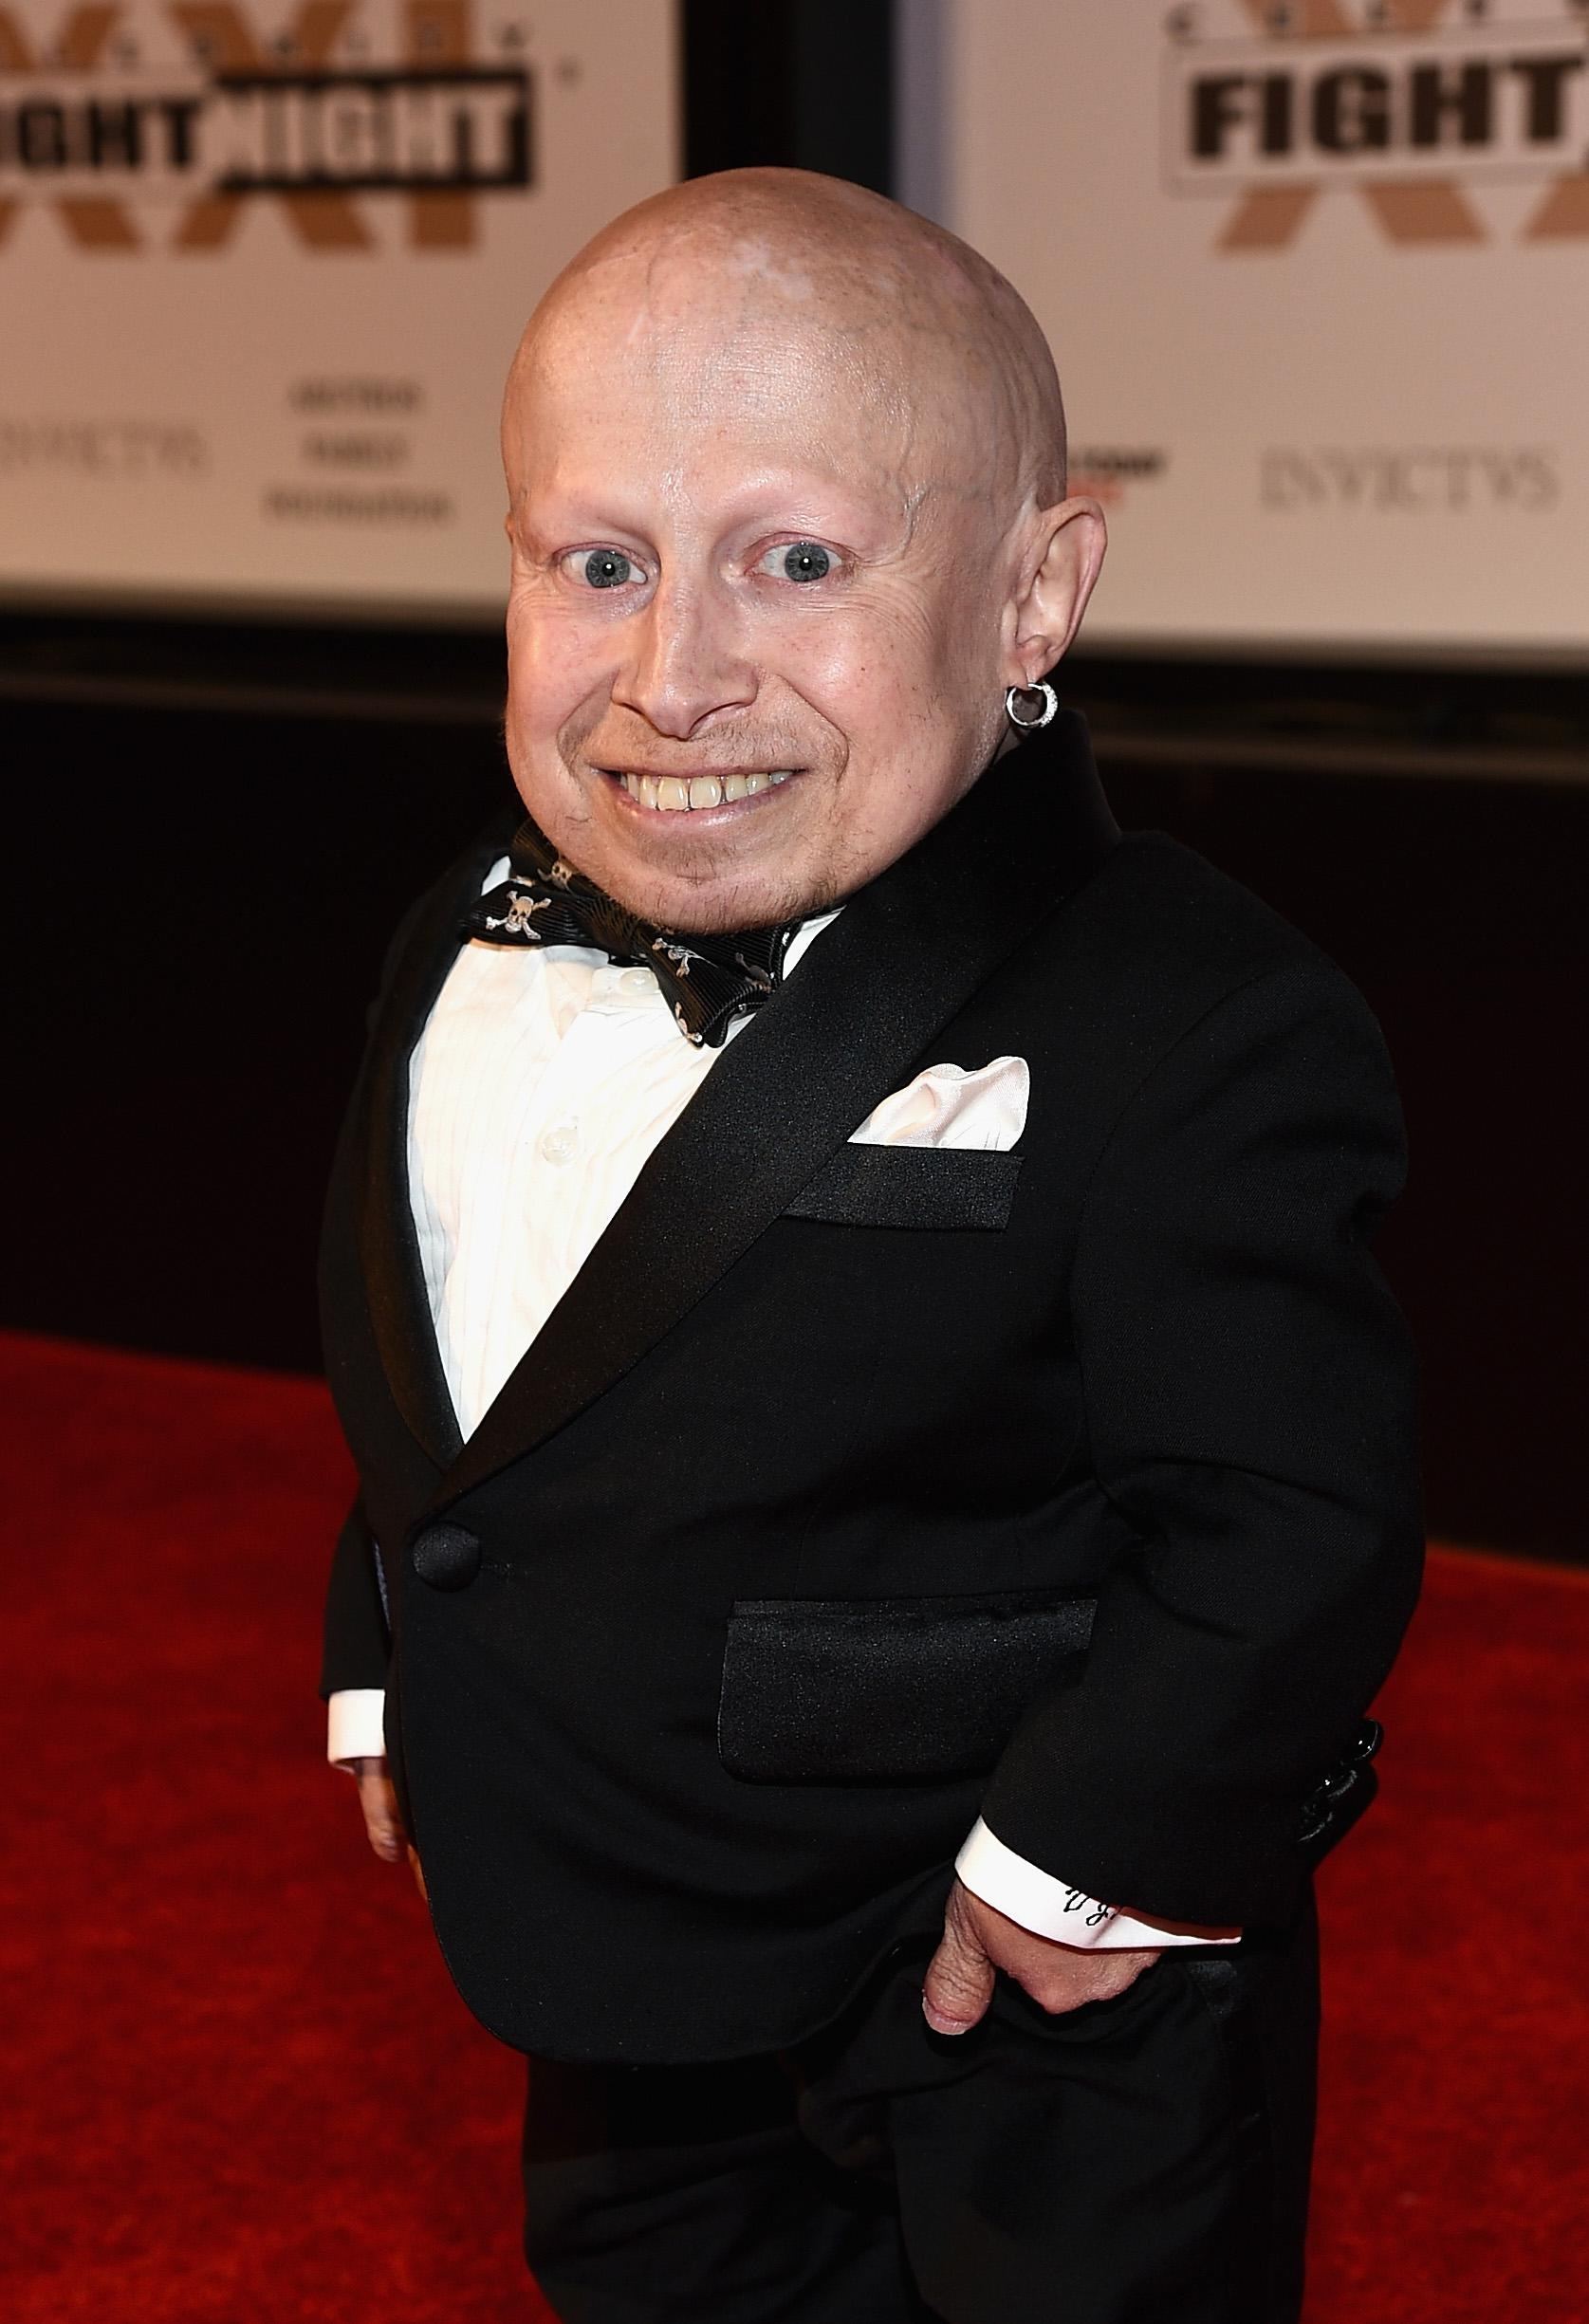 Verne Troyer attends Muhammad Ali's Celebrity Fight Night XXI in 2015.